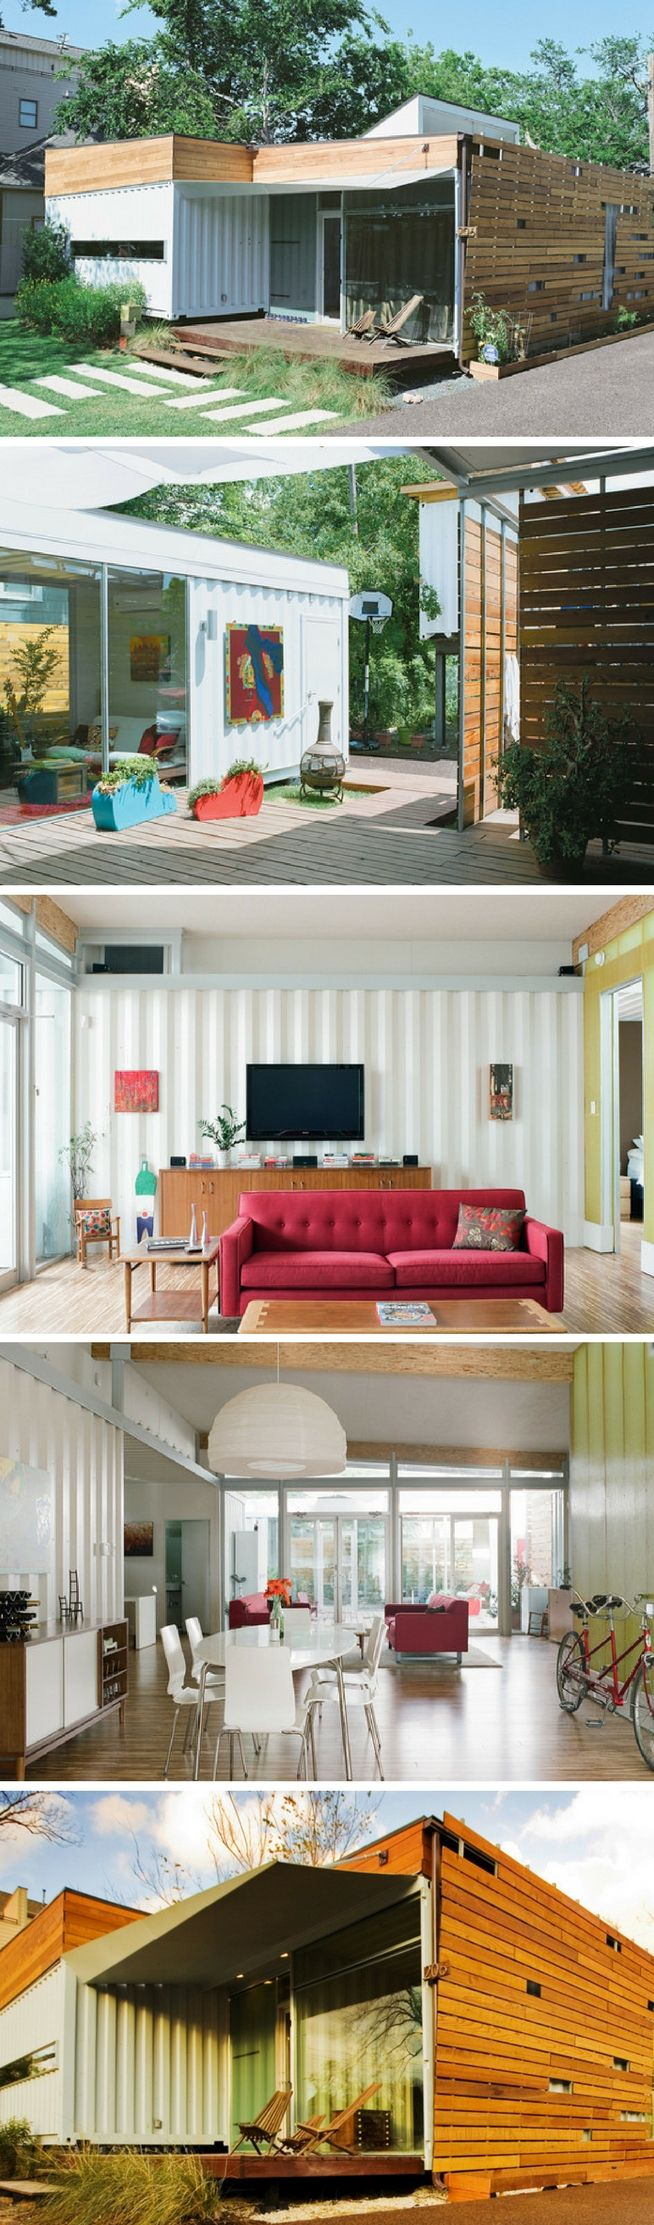 Shipping container music studio joy studio design gallery best - Shipping Container